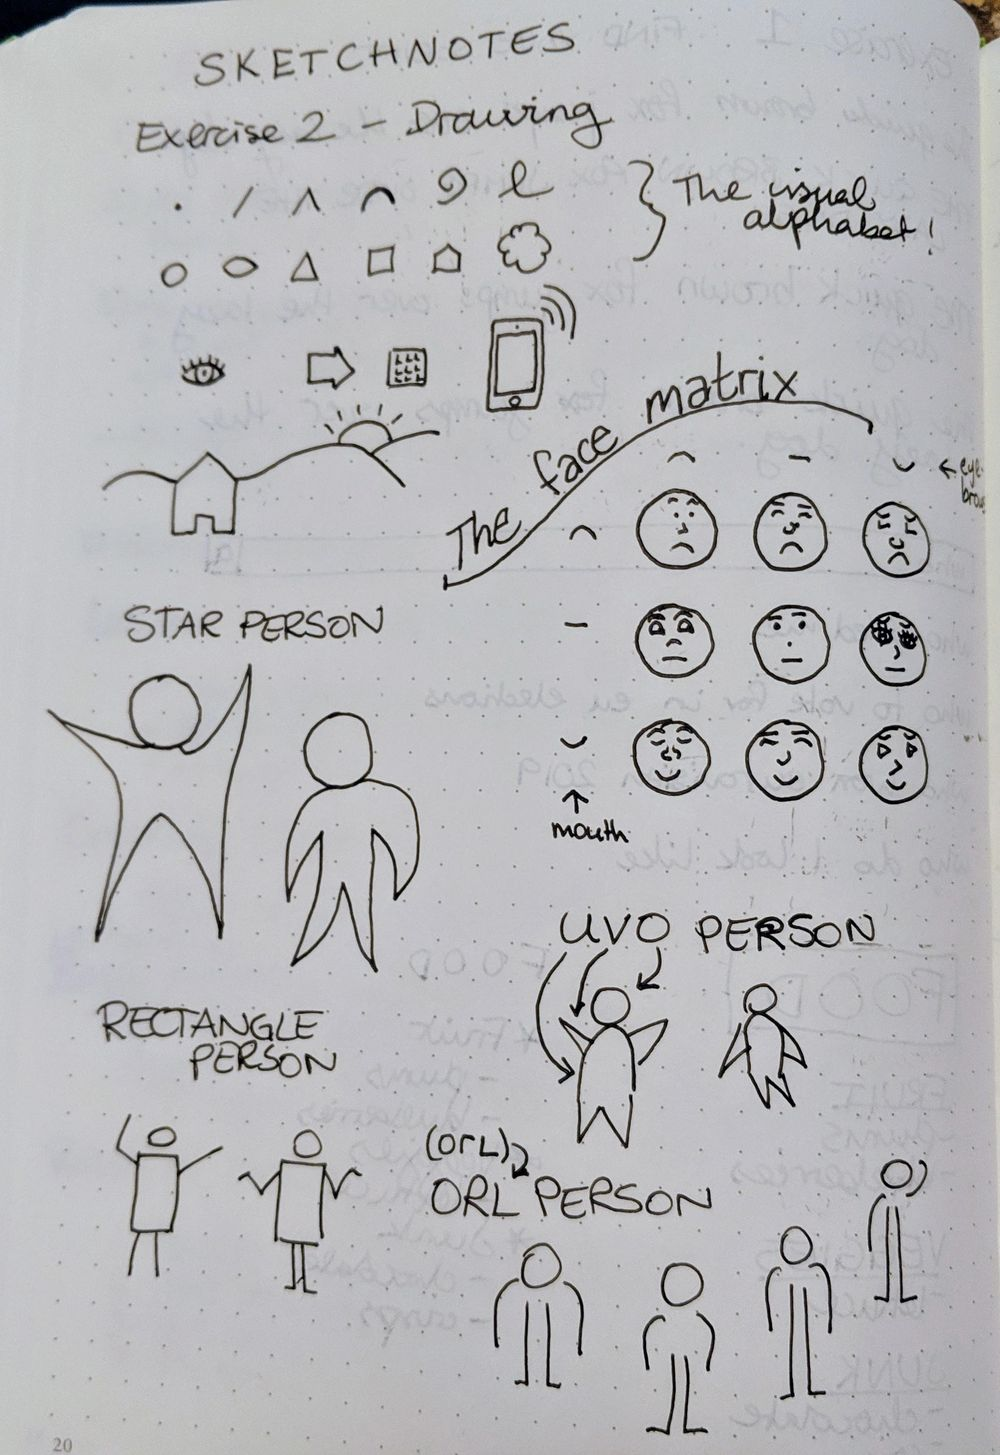 Sketchnotes from Hedvig - image 2 - student project